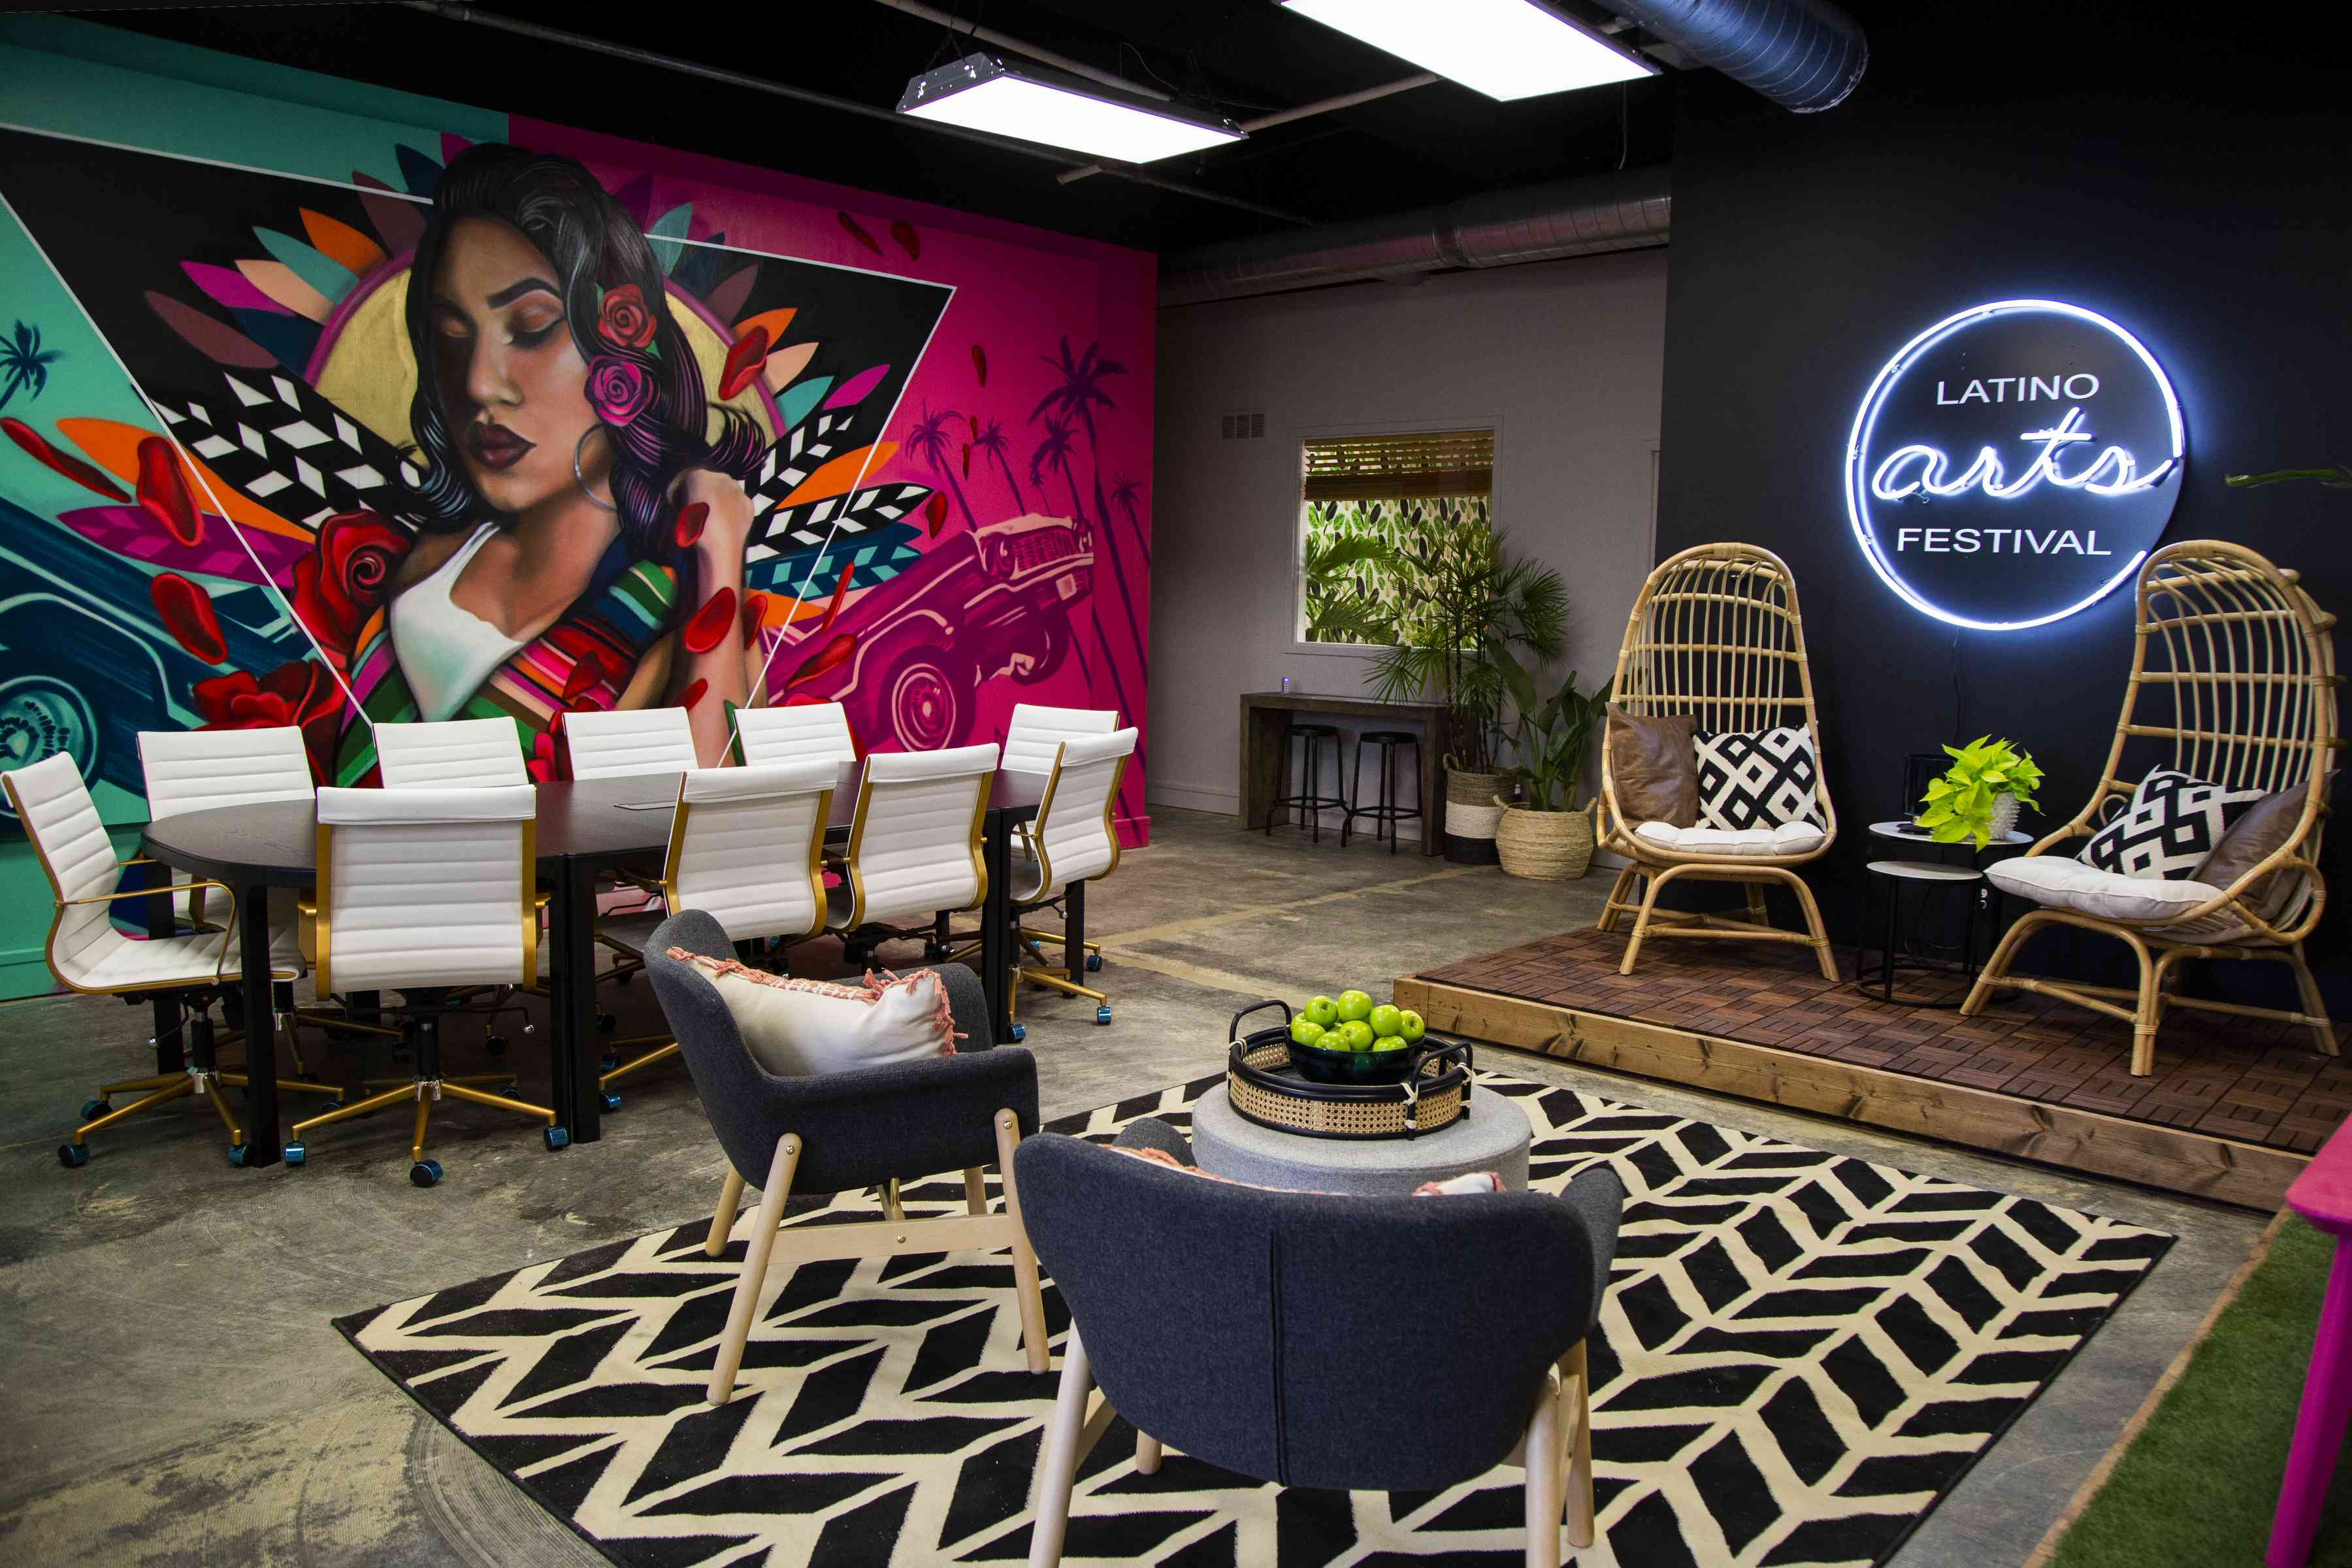 Office with large mural, a neon sign, and multiple seating options